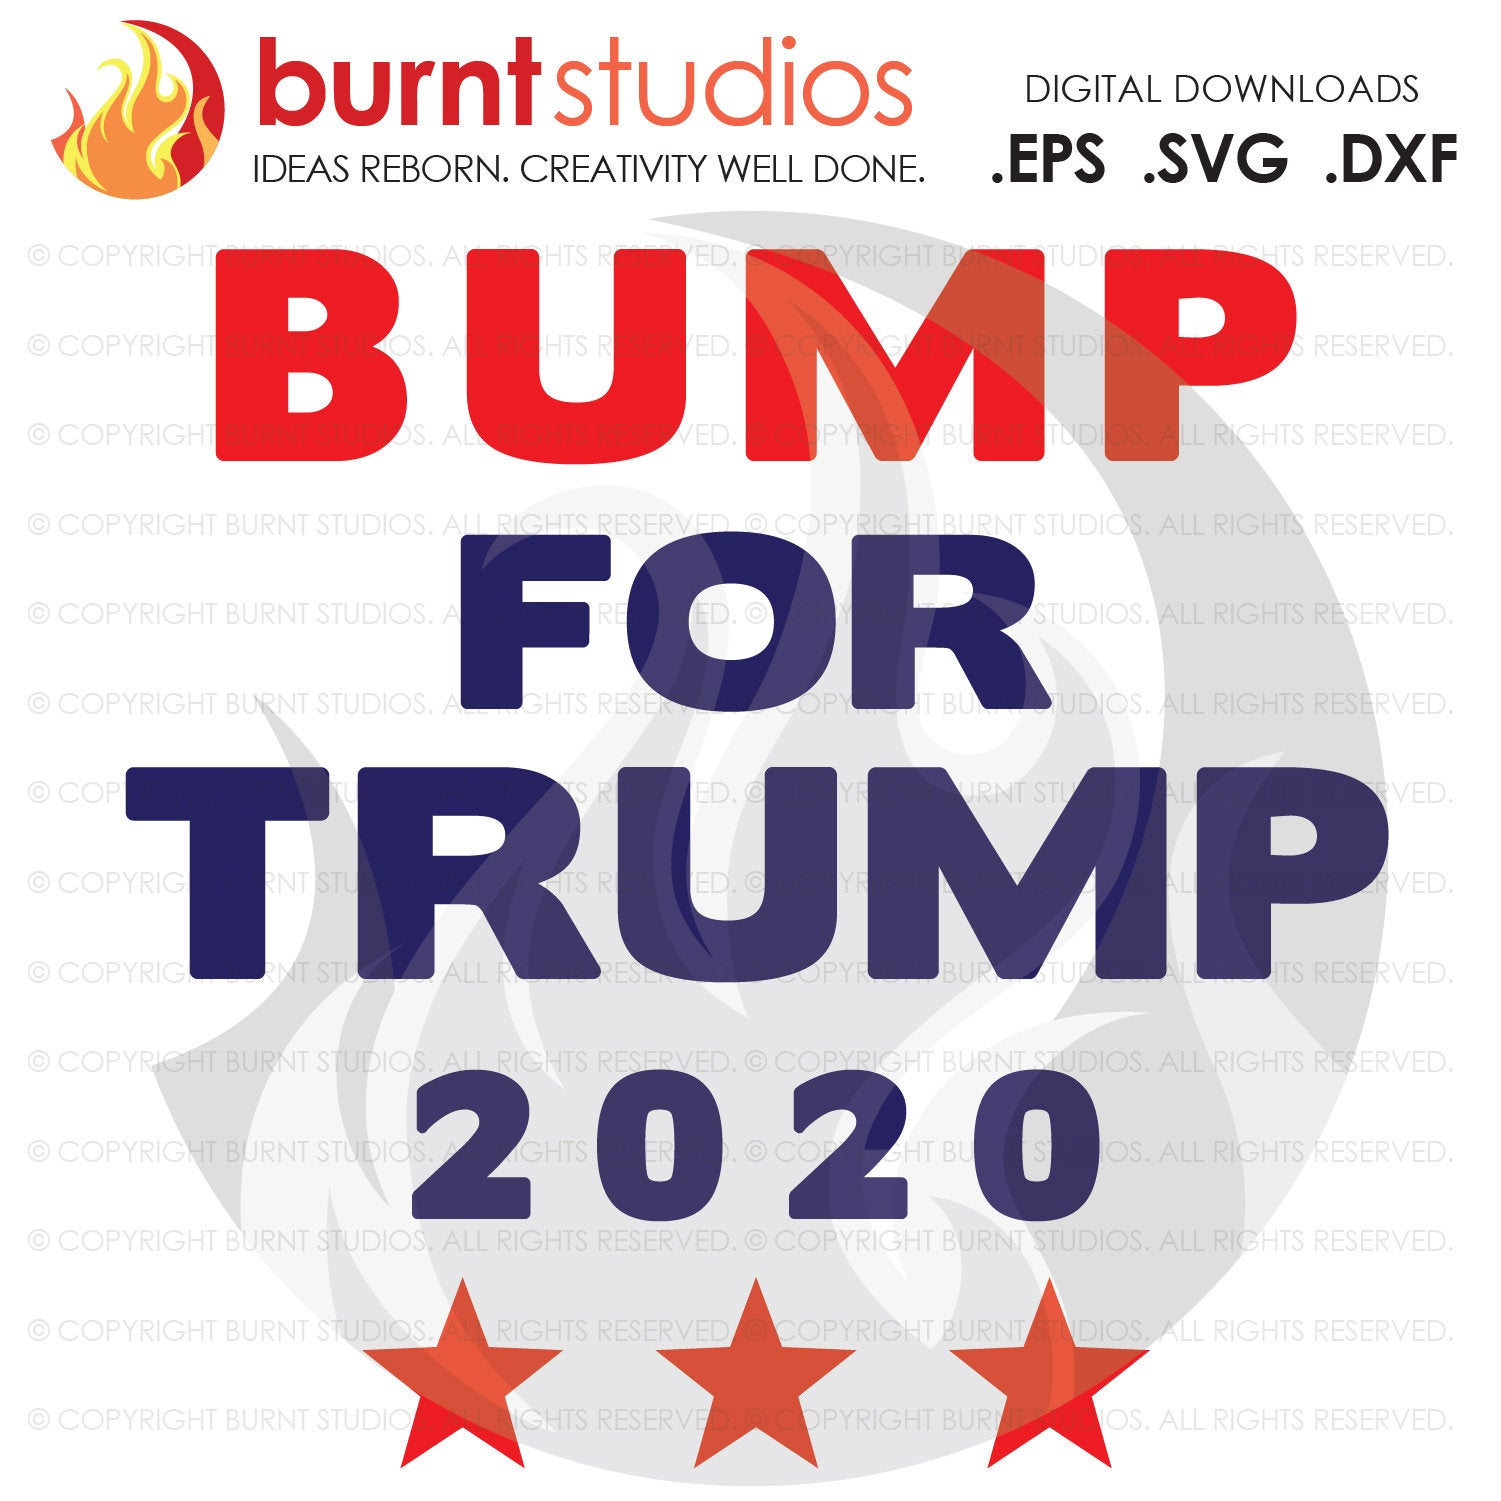 Bump For Trump 2020 Svg Cutting File Keep America Great Election Funny President Usa Four More Years Women For Trump Pence Donald J Burnt Studios